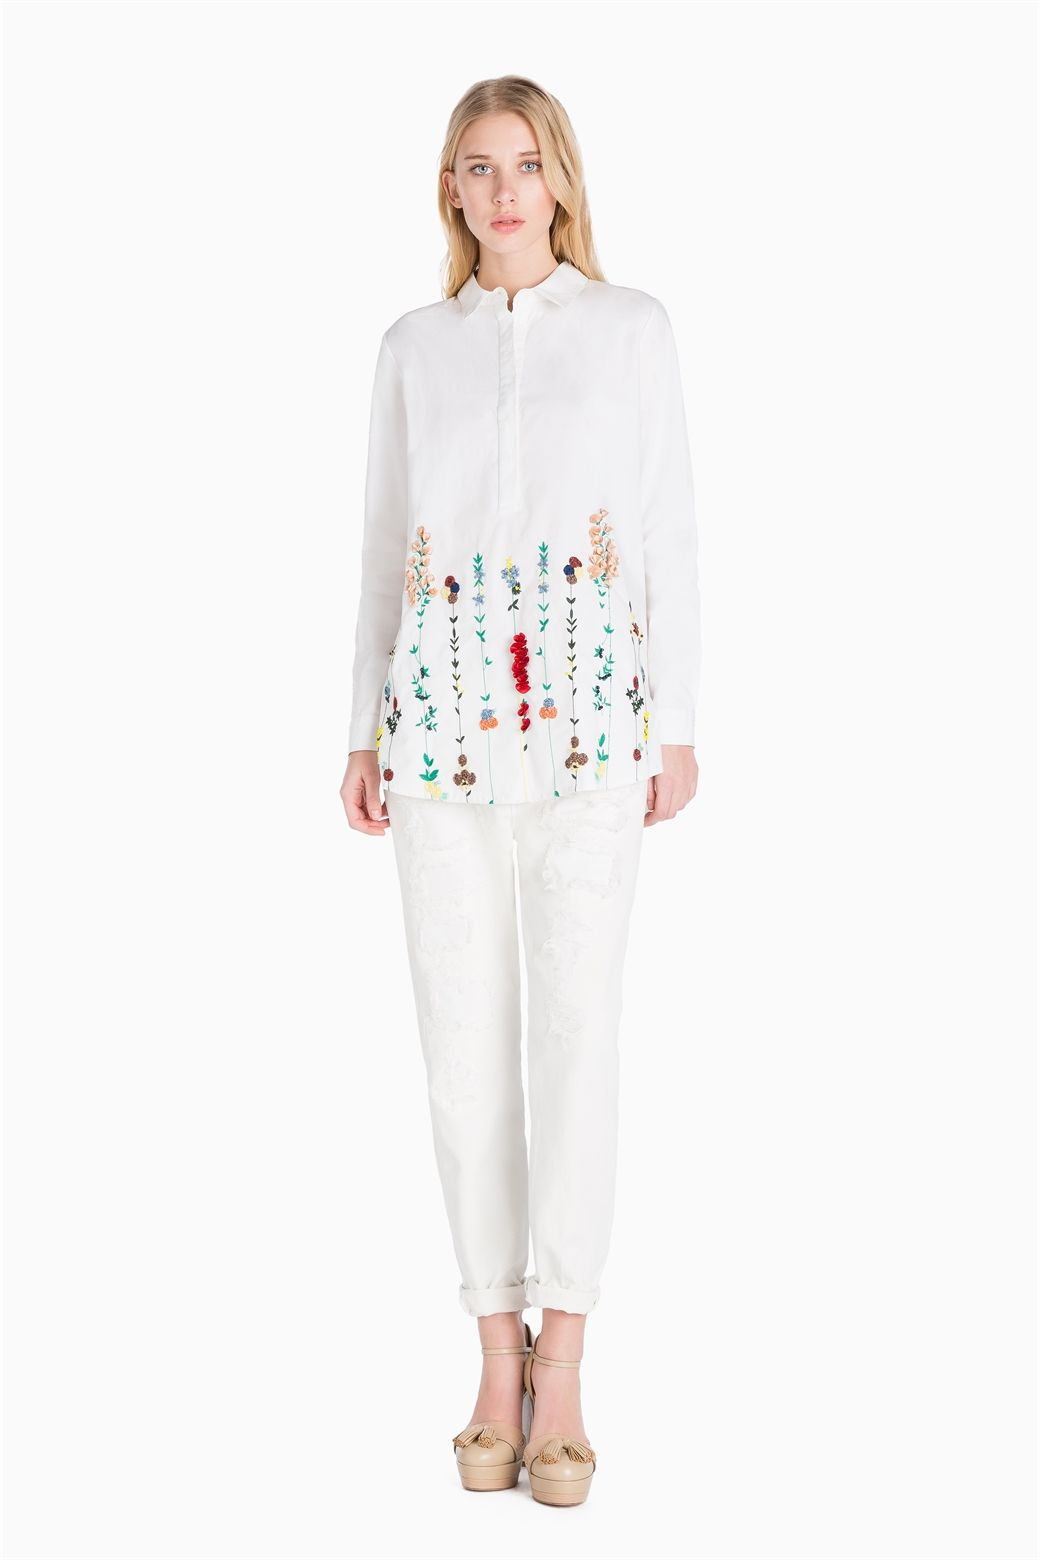 www.twinset.com en-GB embroidered-shirt--p8337?s=S&c=5